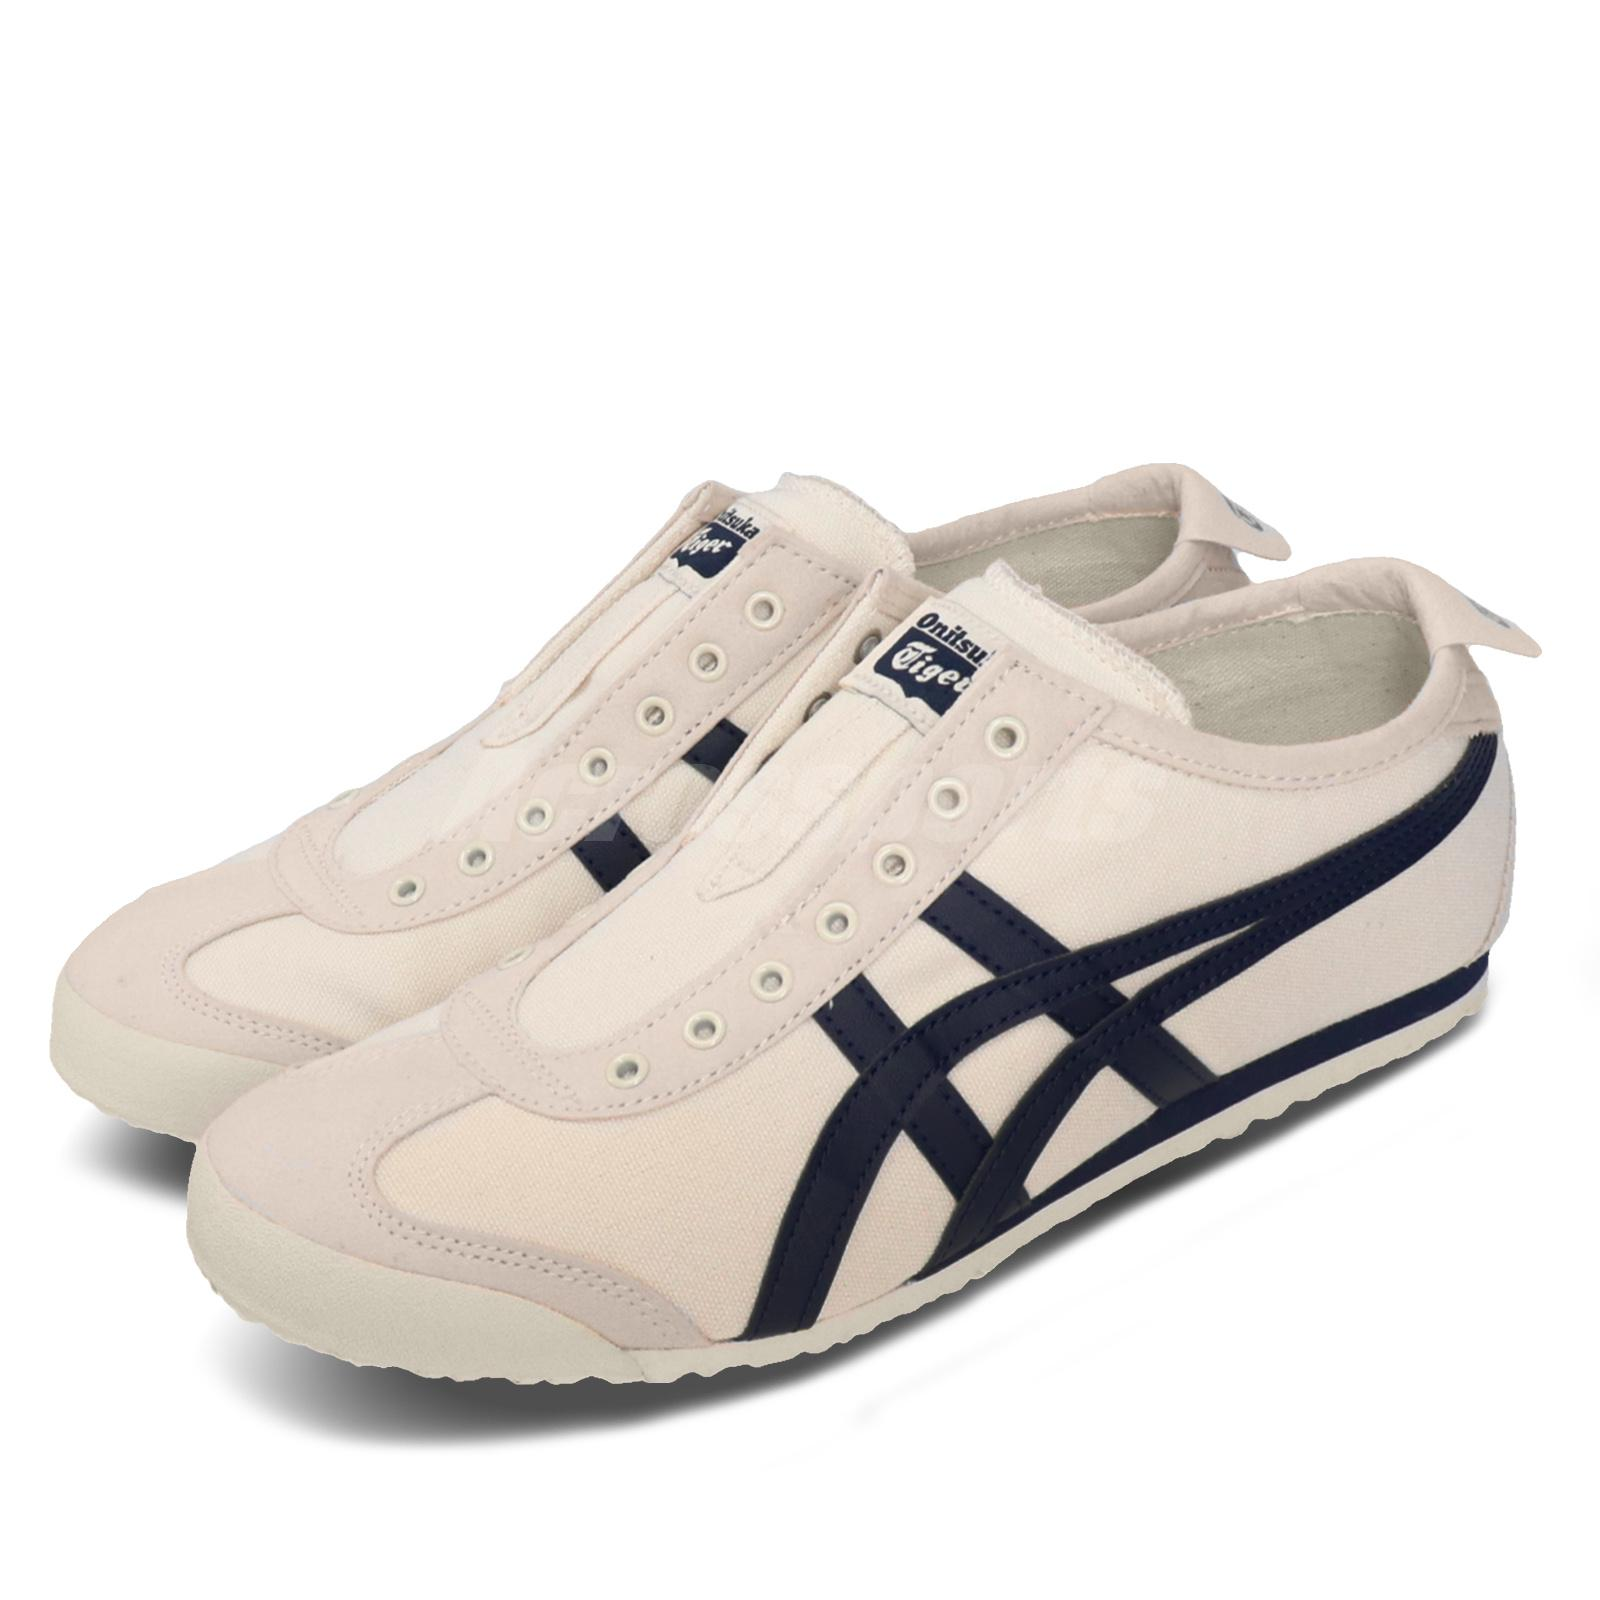 Details about Asics Onitsuka Tiger Mexico 66 Slip-On Birch Navy Mens Womens  Shoes 1183A360-205